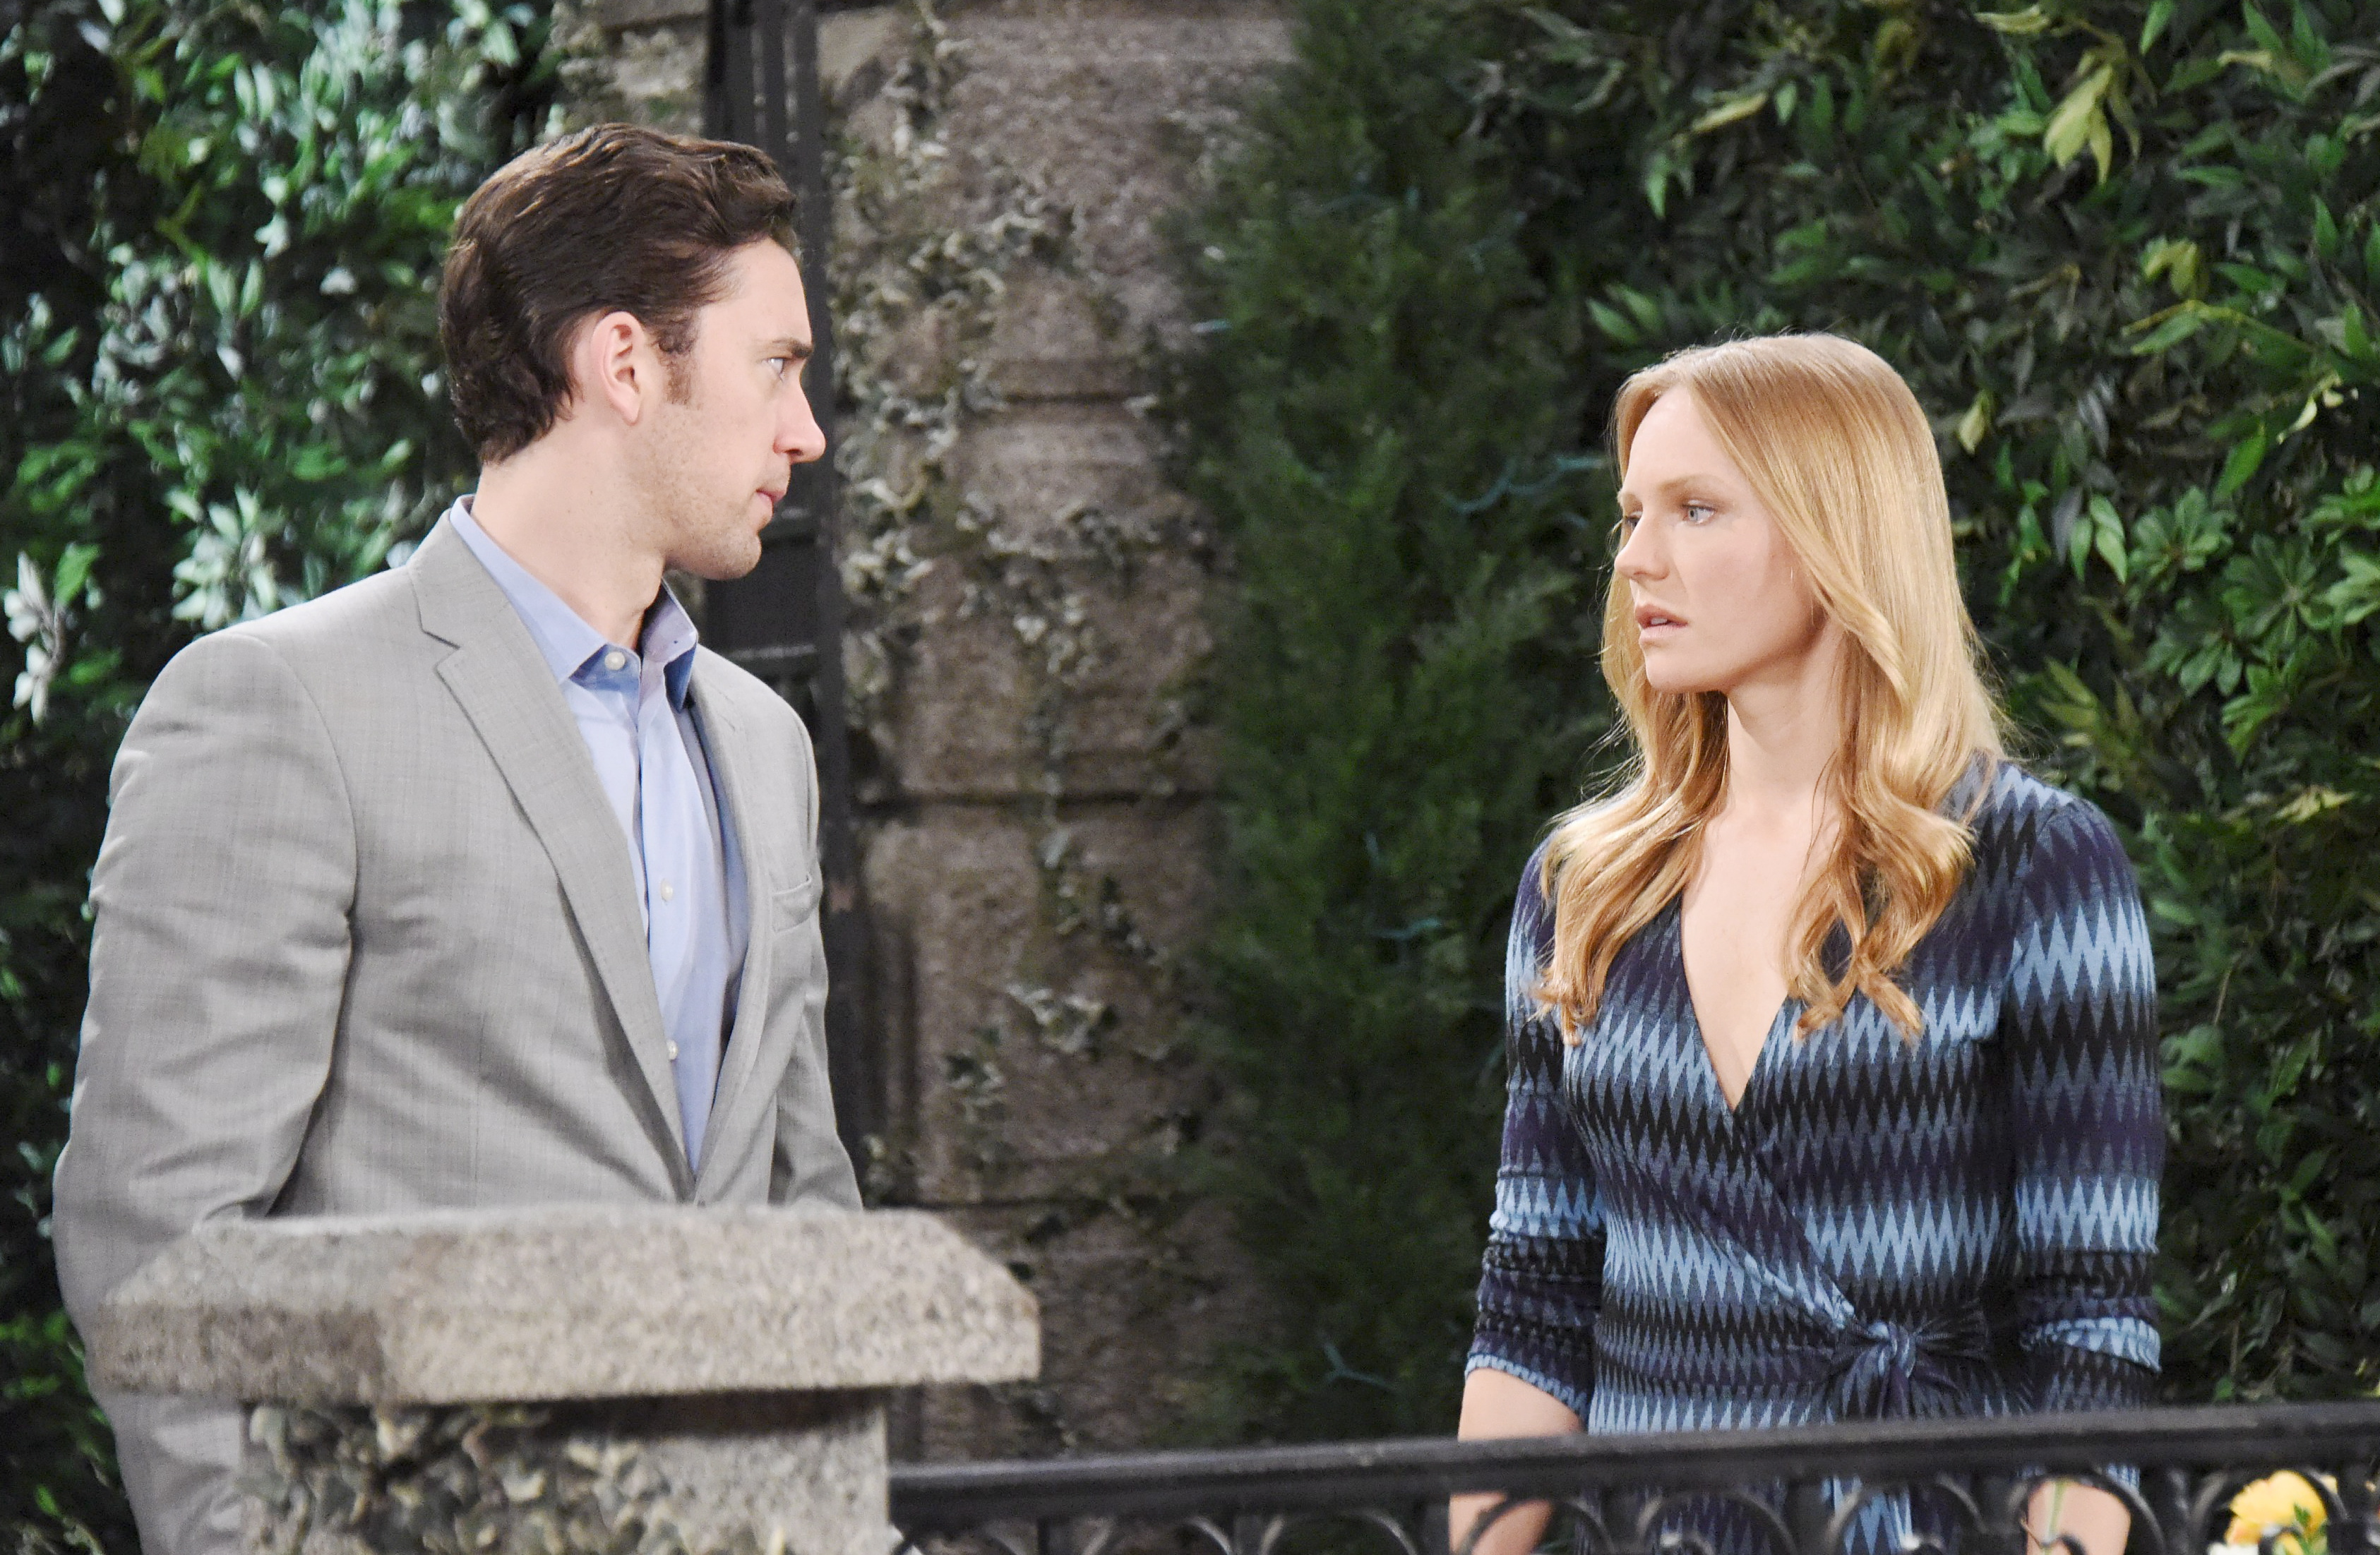 DAYS OF OUR LIVES EPISODE 13124